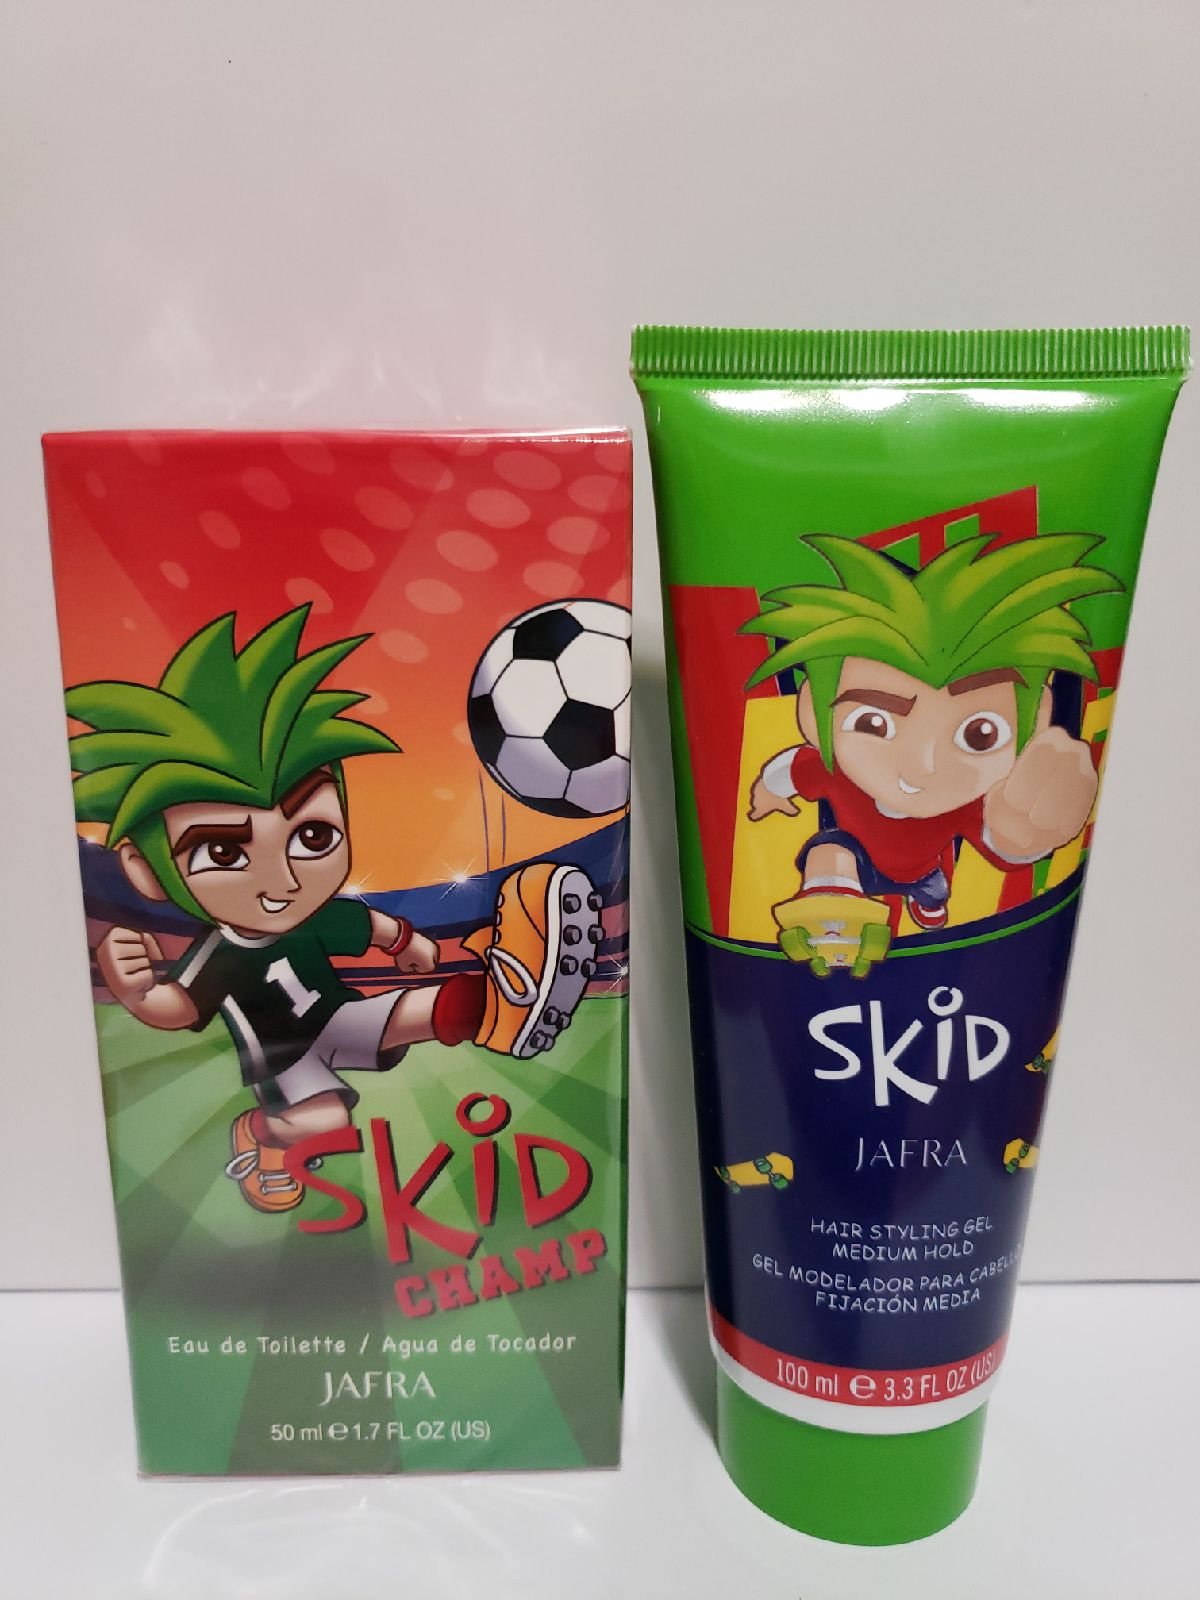 Jafra Skid Champ fragance for boys and H